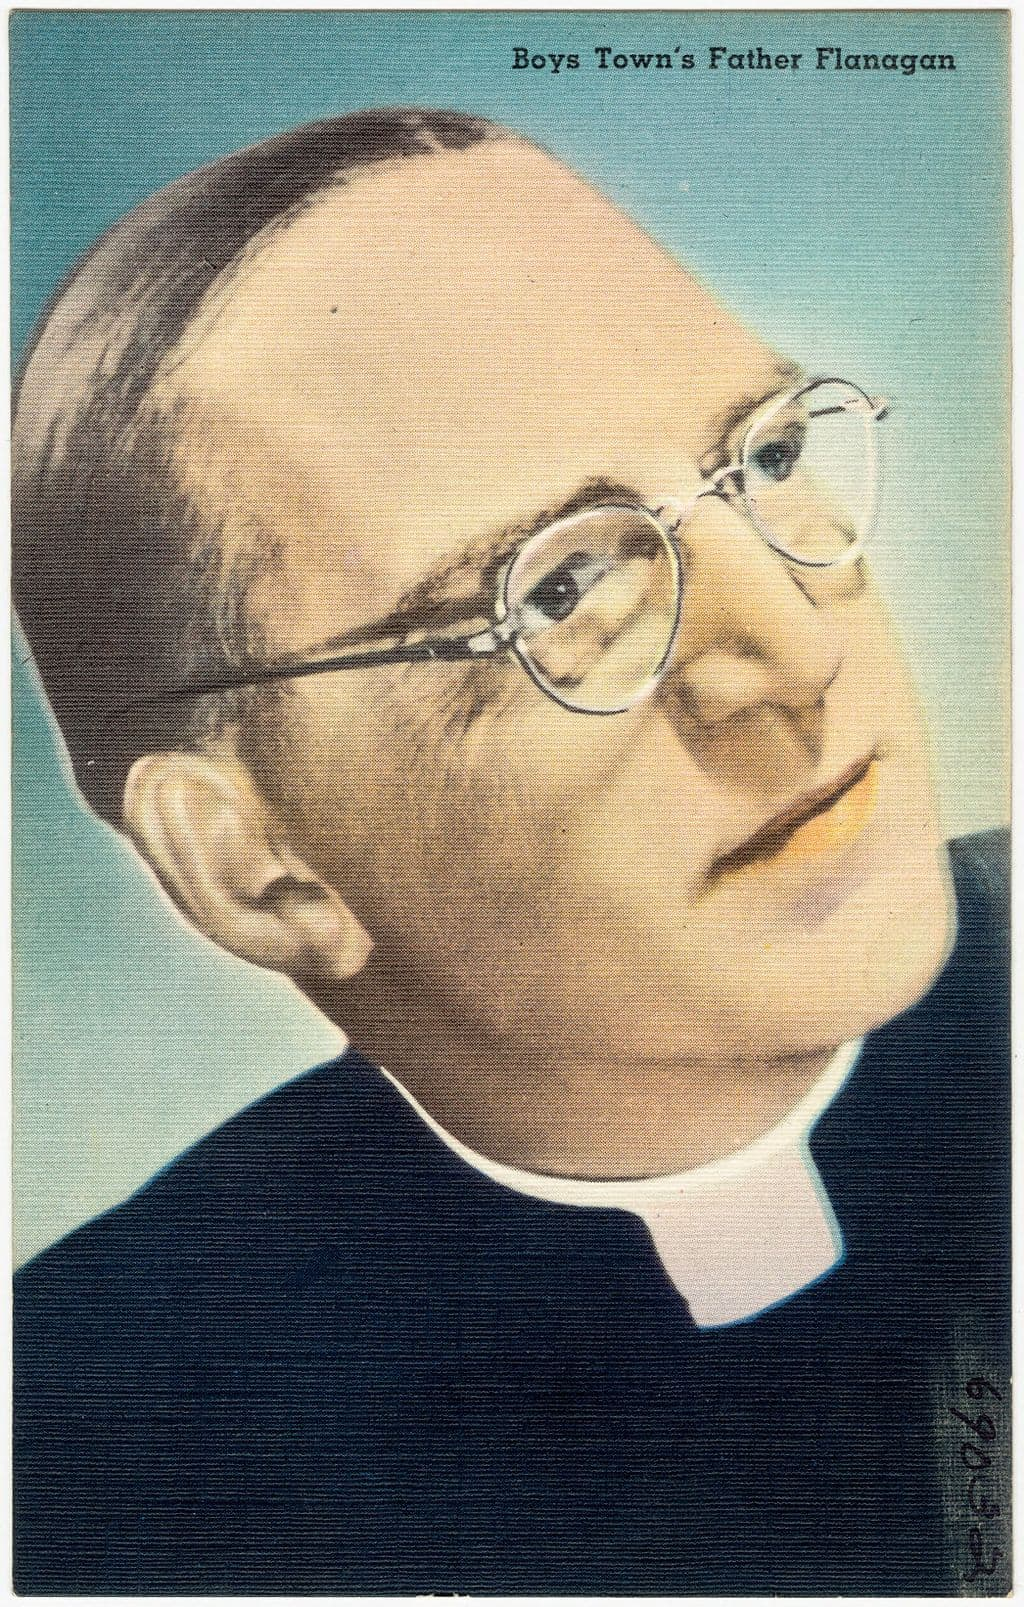 Portrait of Father Edward Flanagan of Boys Town